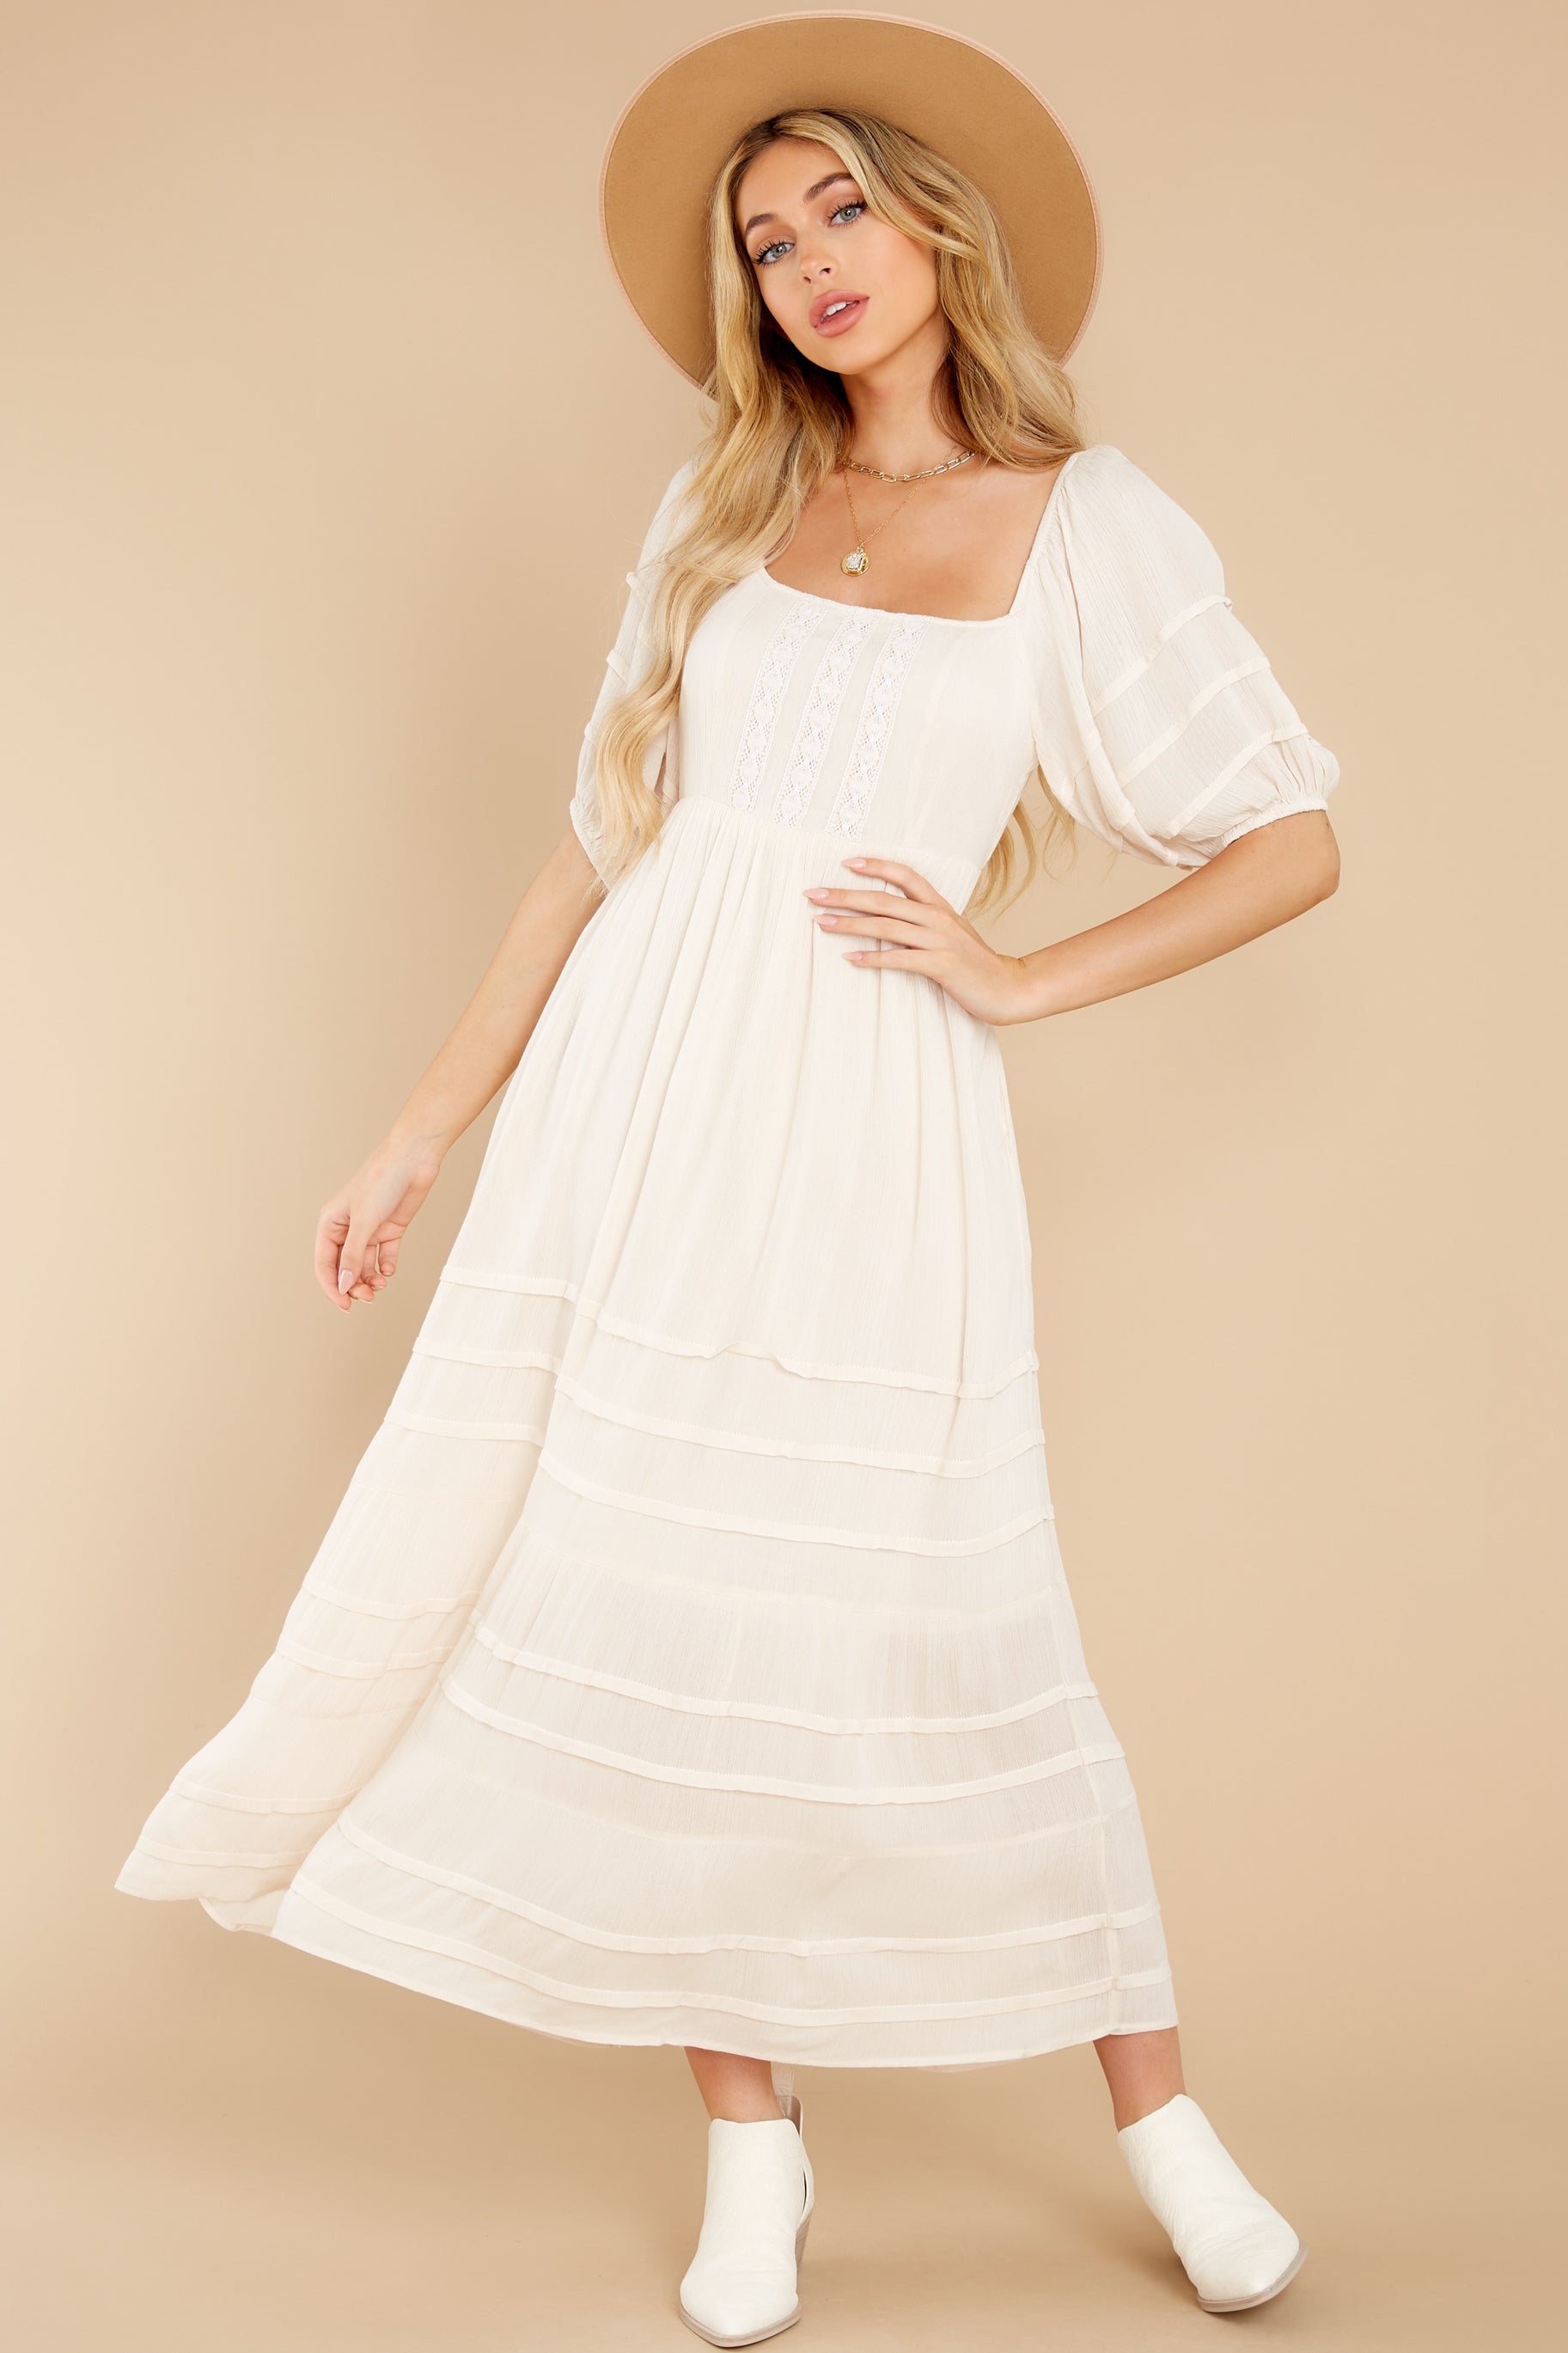 8 Long Way Around Ivory Maxi Dress at reddress.com